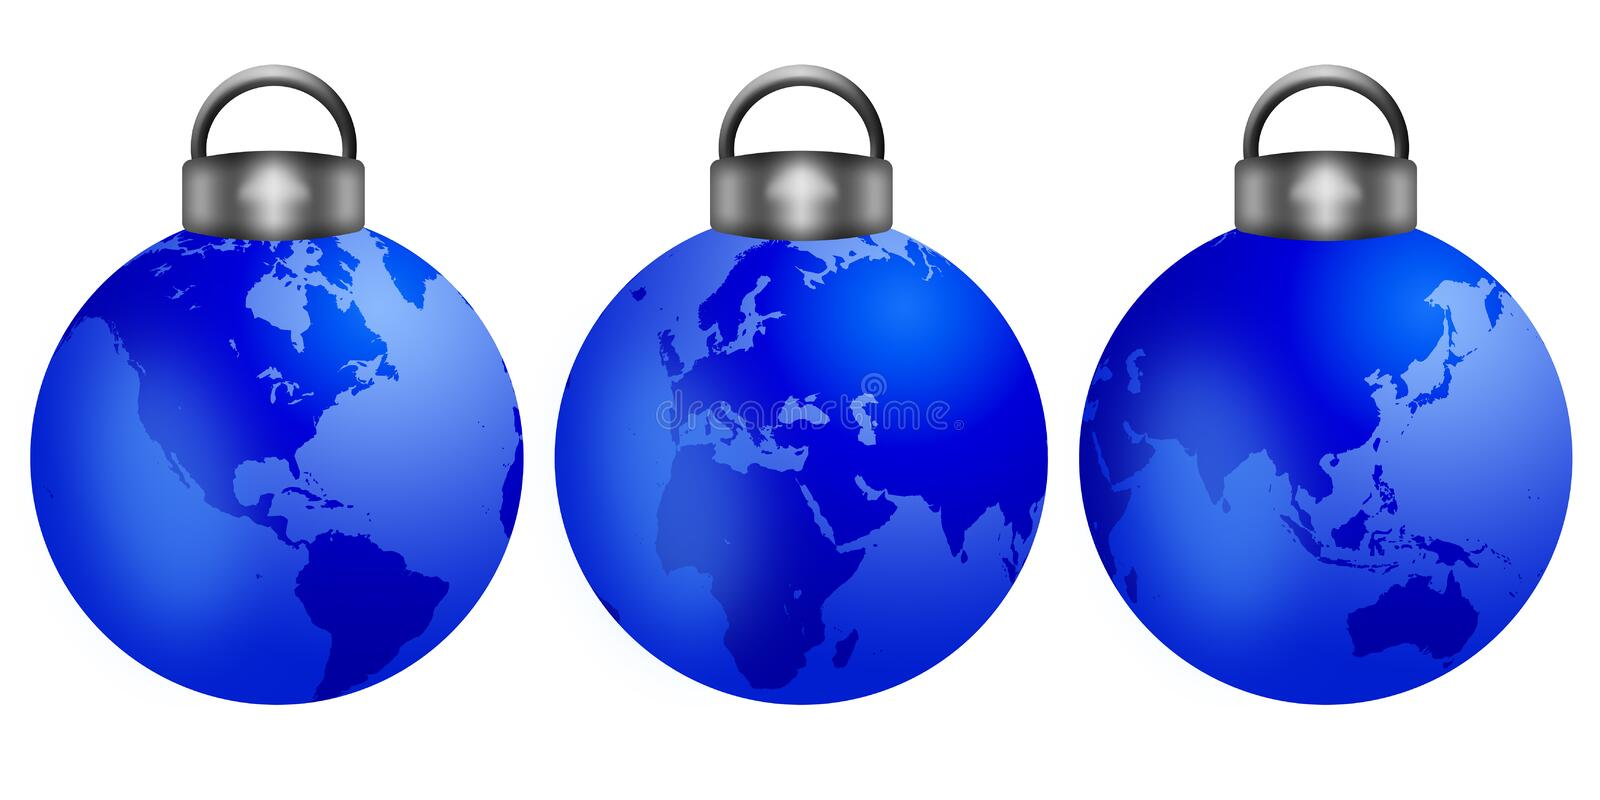 Download Christmas Tree Ornaments With World Map Stock Illustration - Image: 22080218